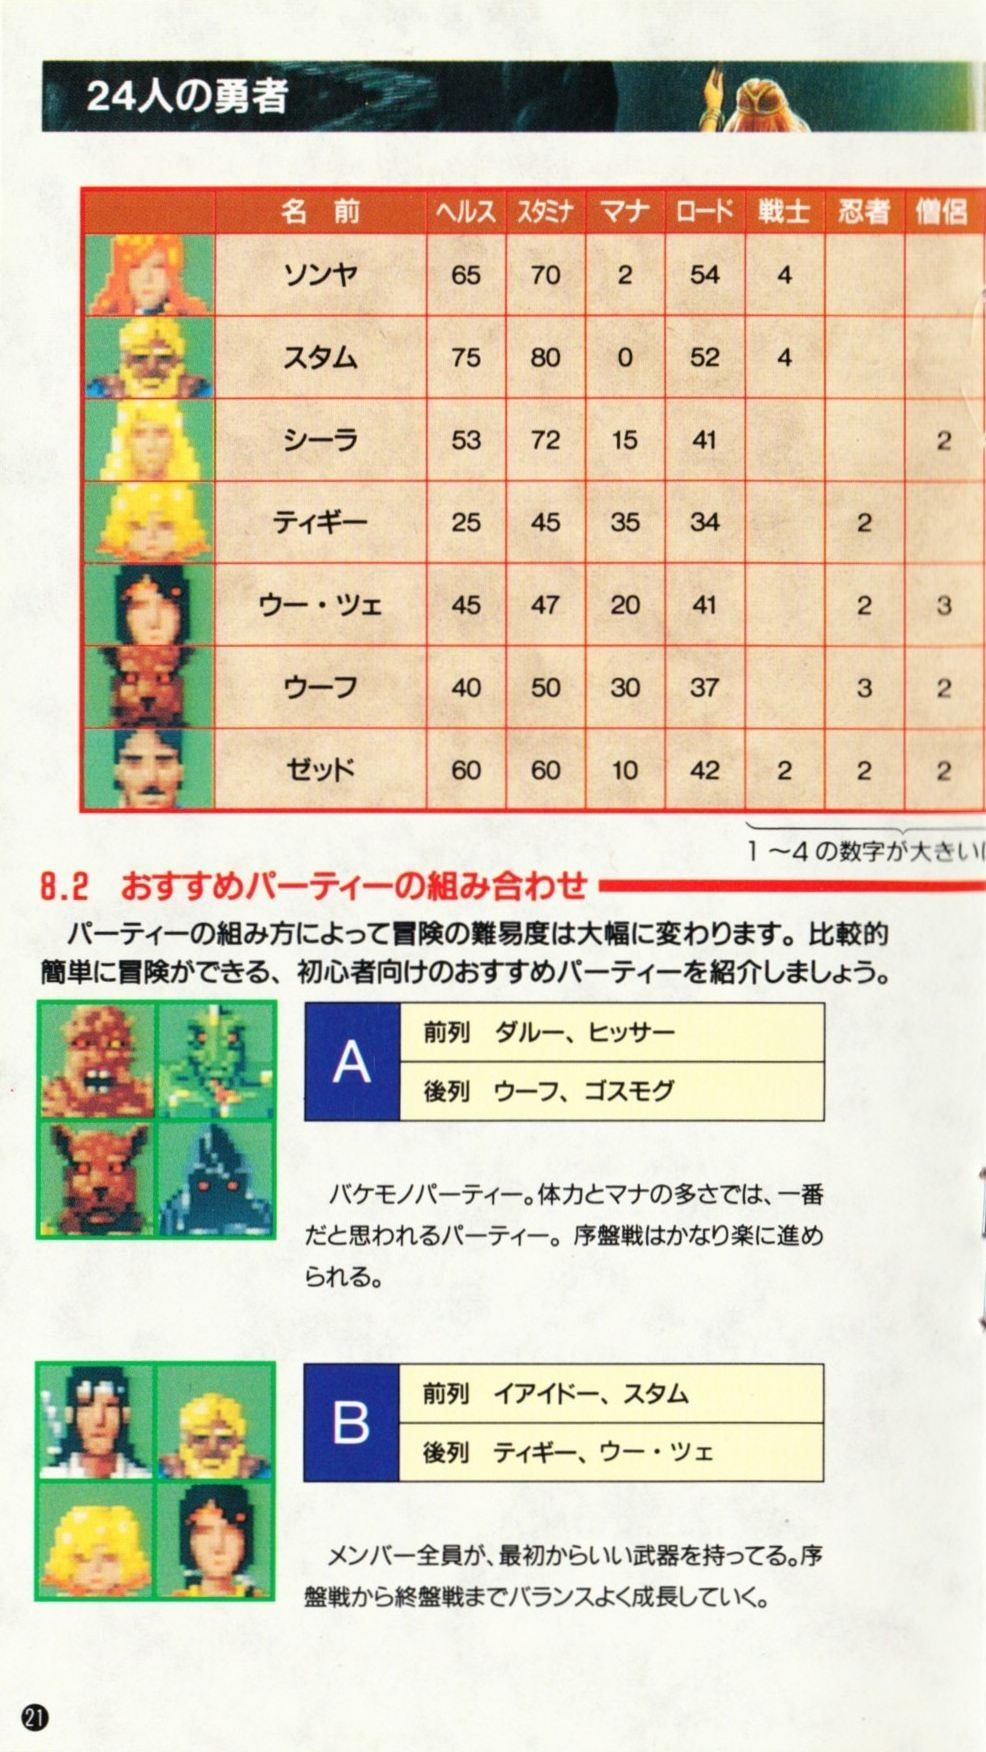 Game - Dungeon Master - JP - Super Famicom - Manual - Page 024 - Scan